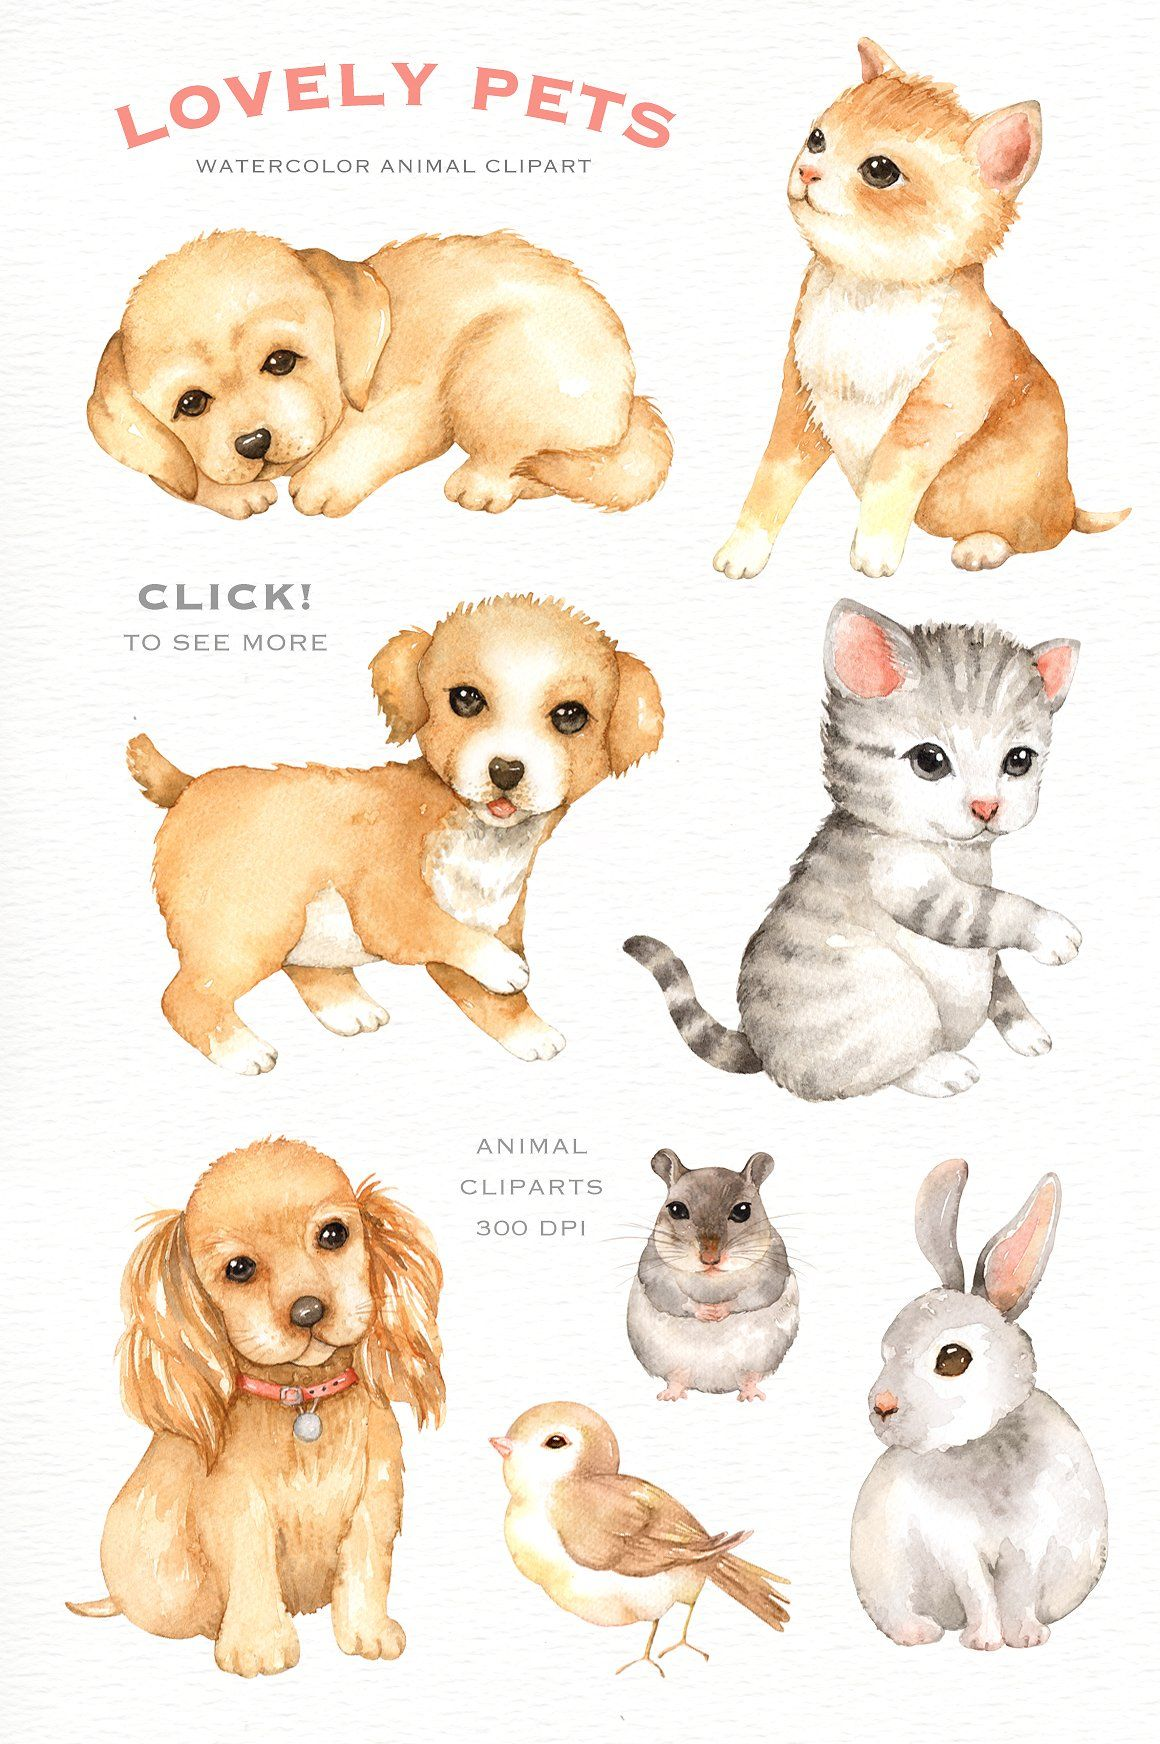 Lovely Pets Watercolor Clipart Watercolor Animals Animal